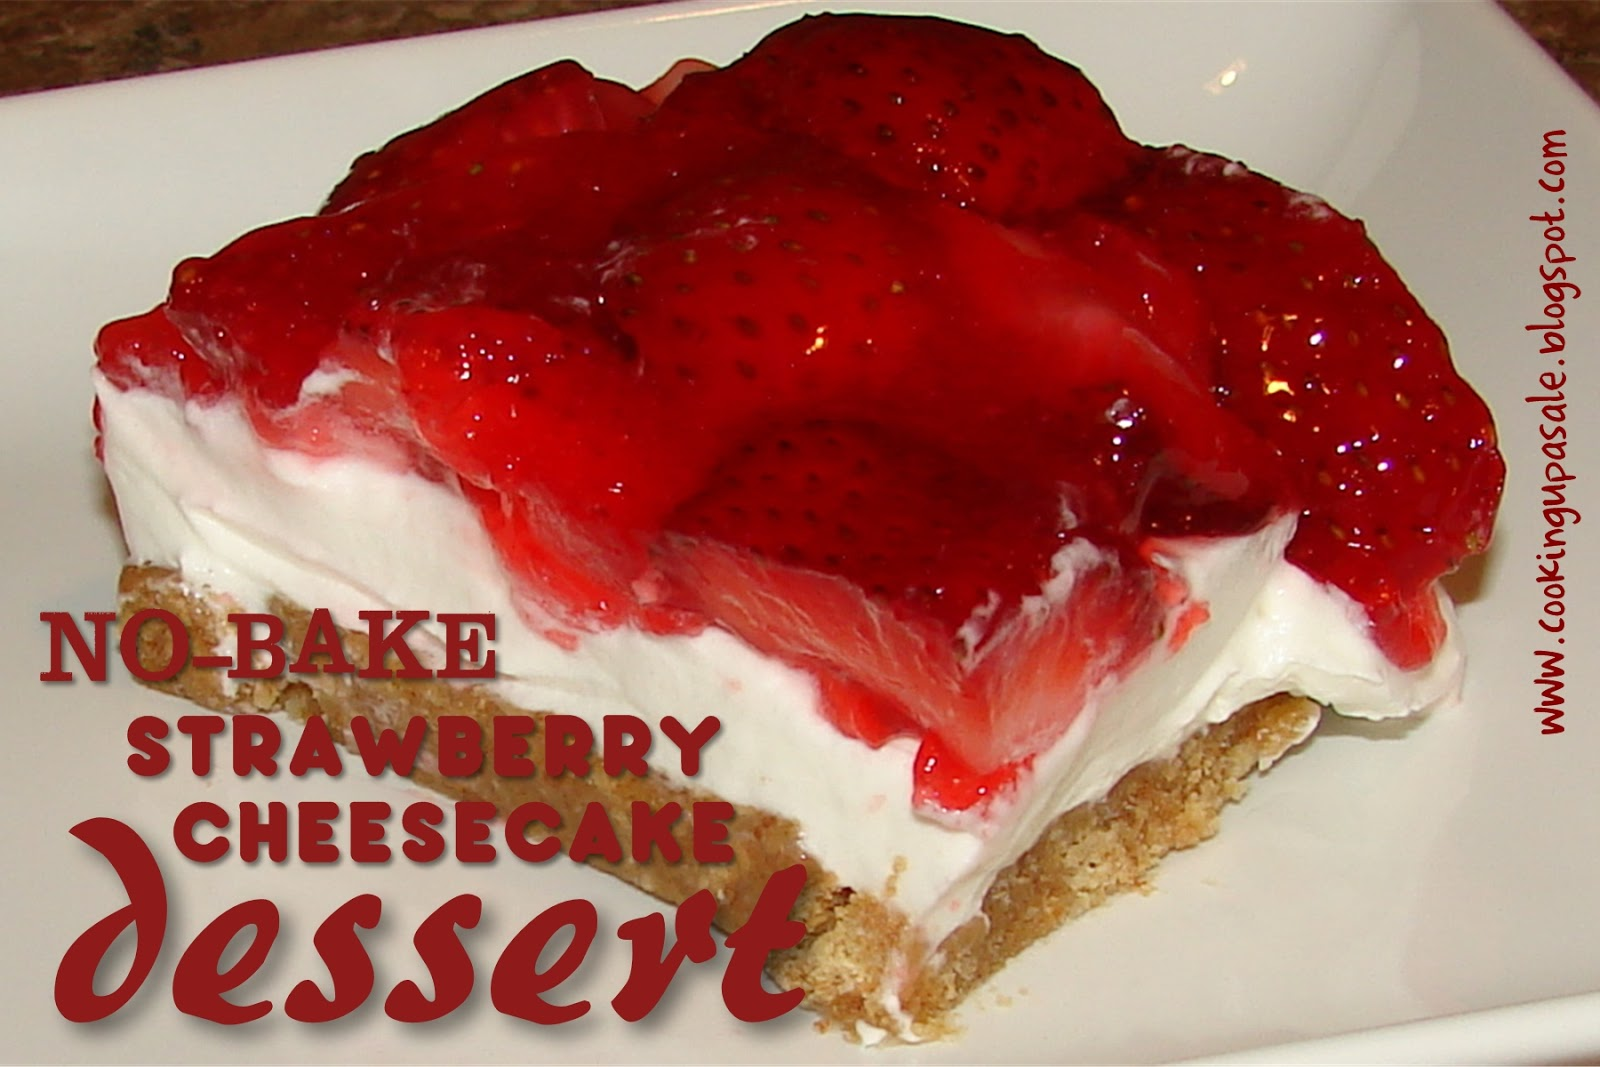 bake strawberry cheesecake no bake strawberry icebox cake no bake ...